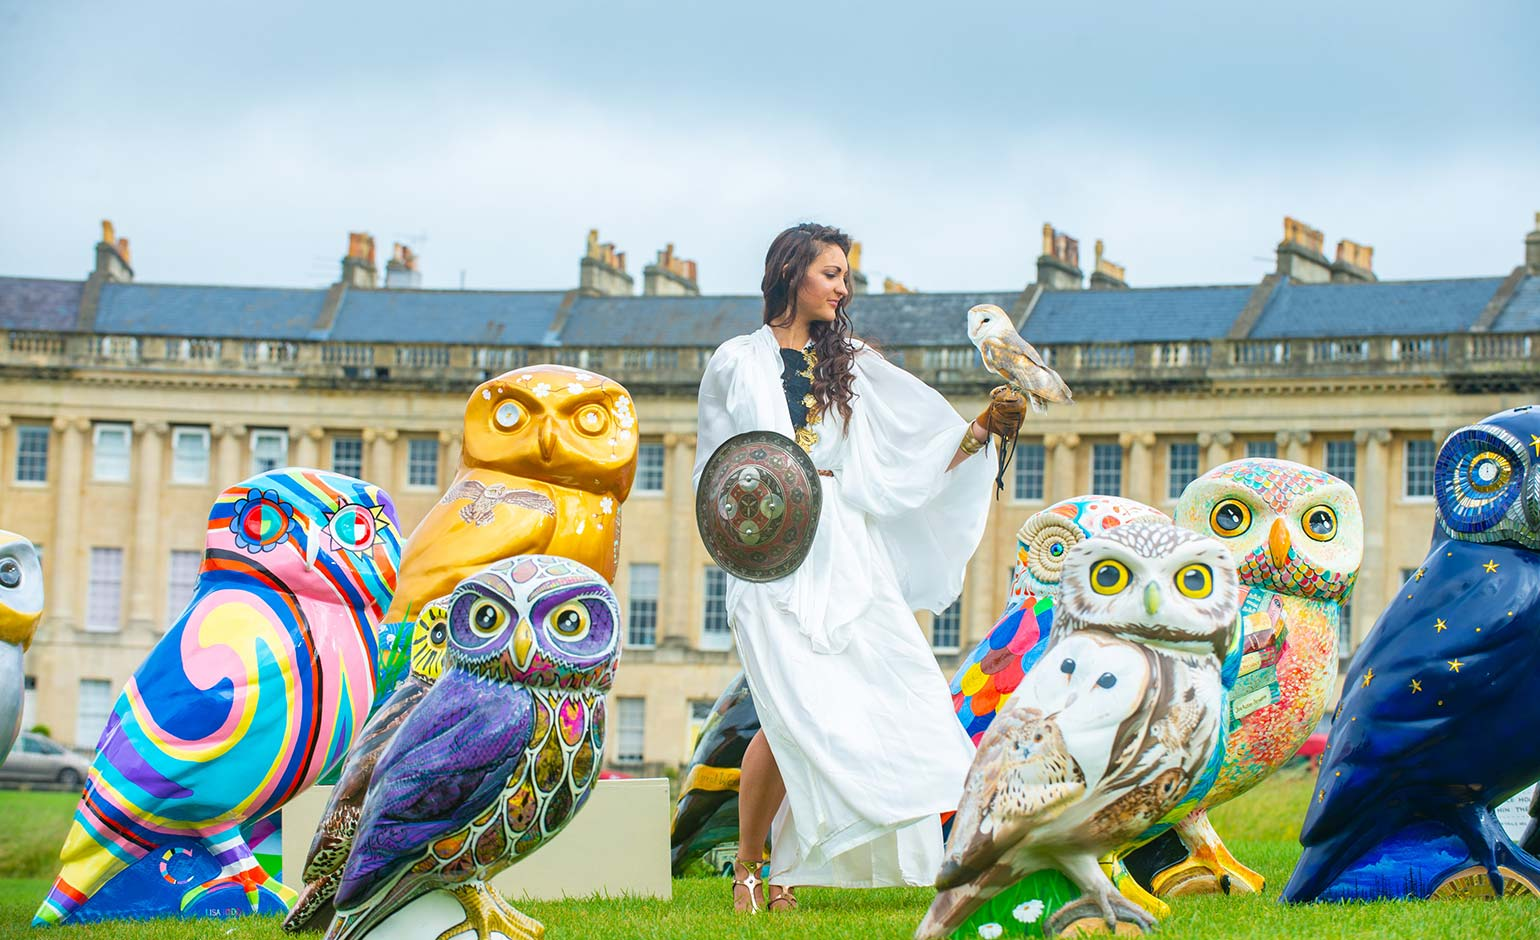 Thirty giant owl sculptures swoop onto Bath's world famous Royal Crescent